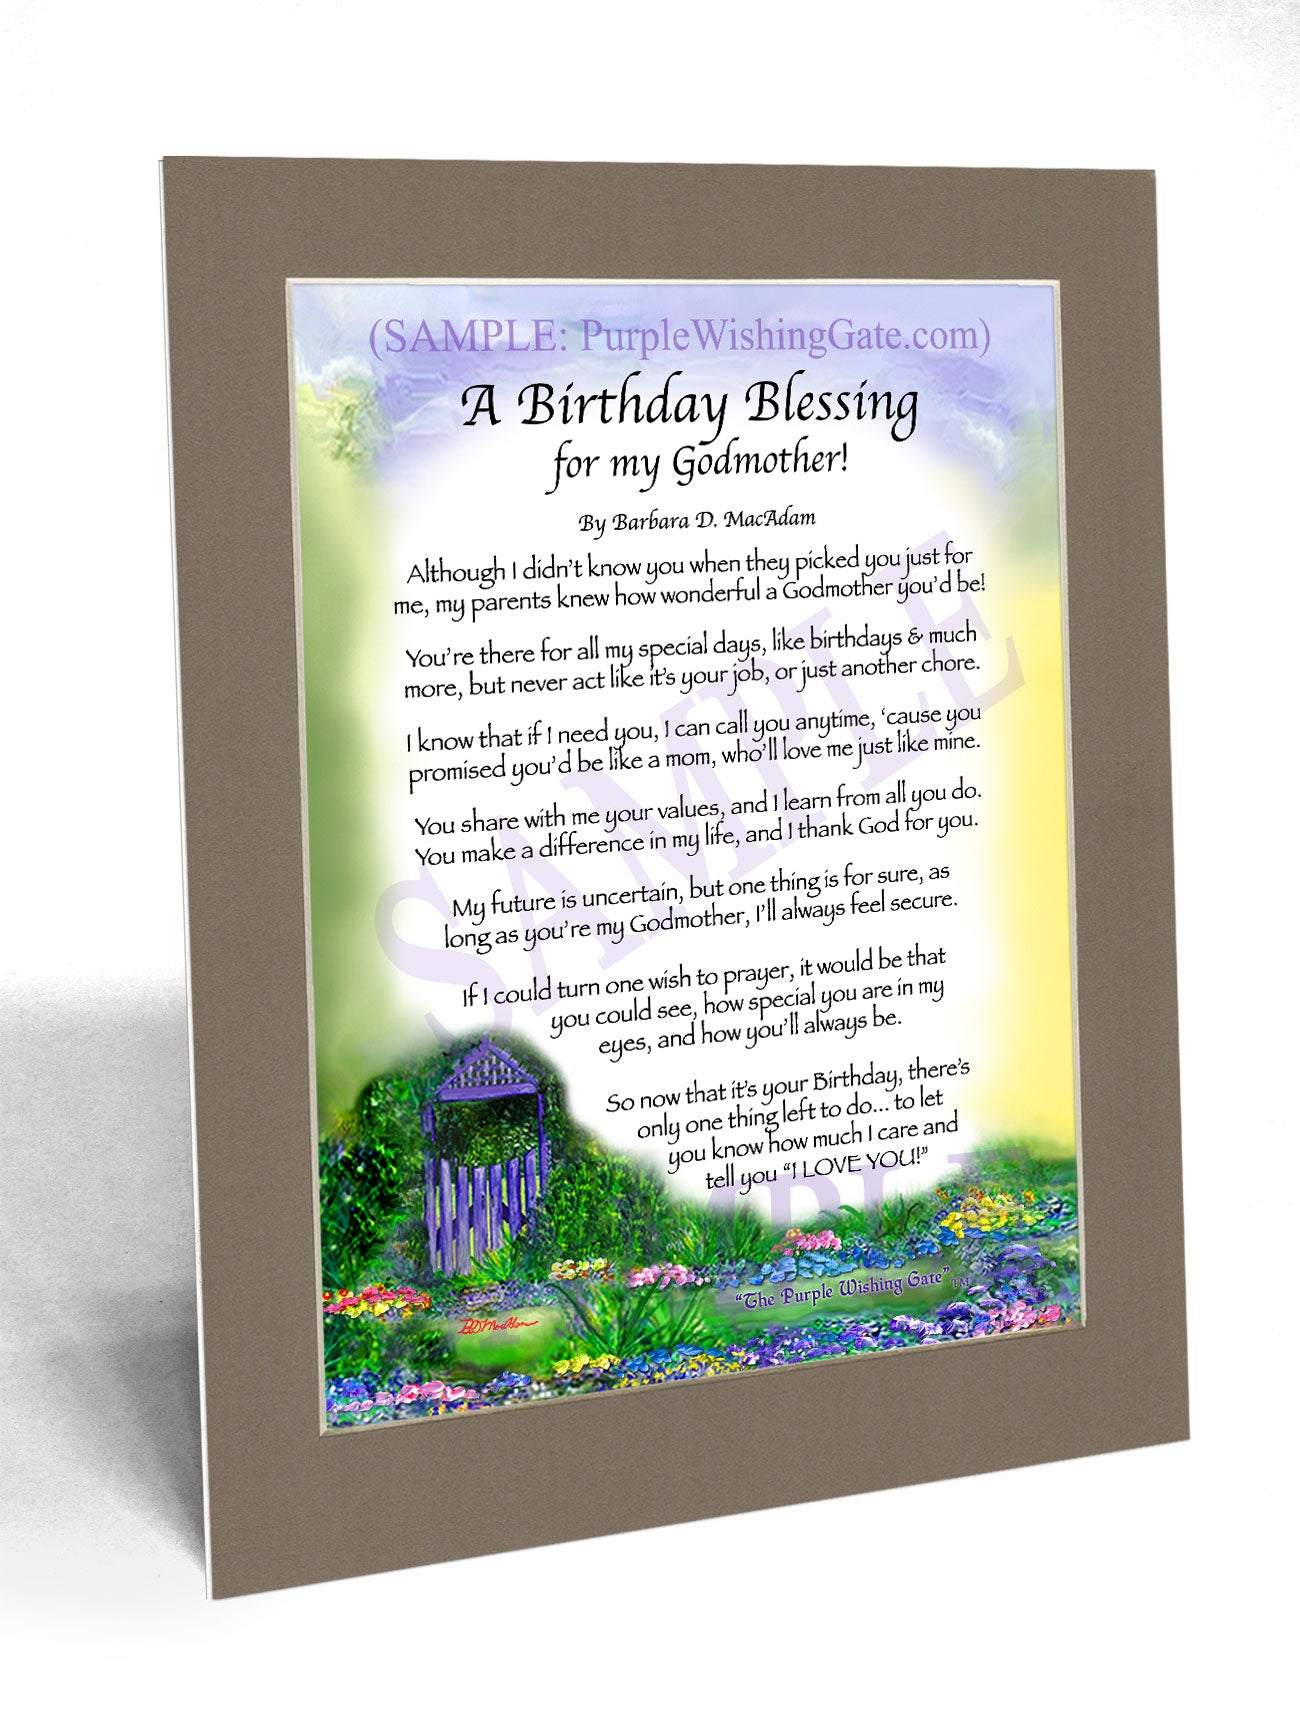 Godmother\'s Birthday Gift: Personalized, Framed Blessing ...